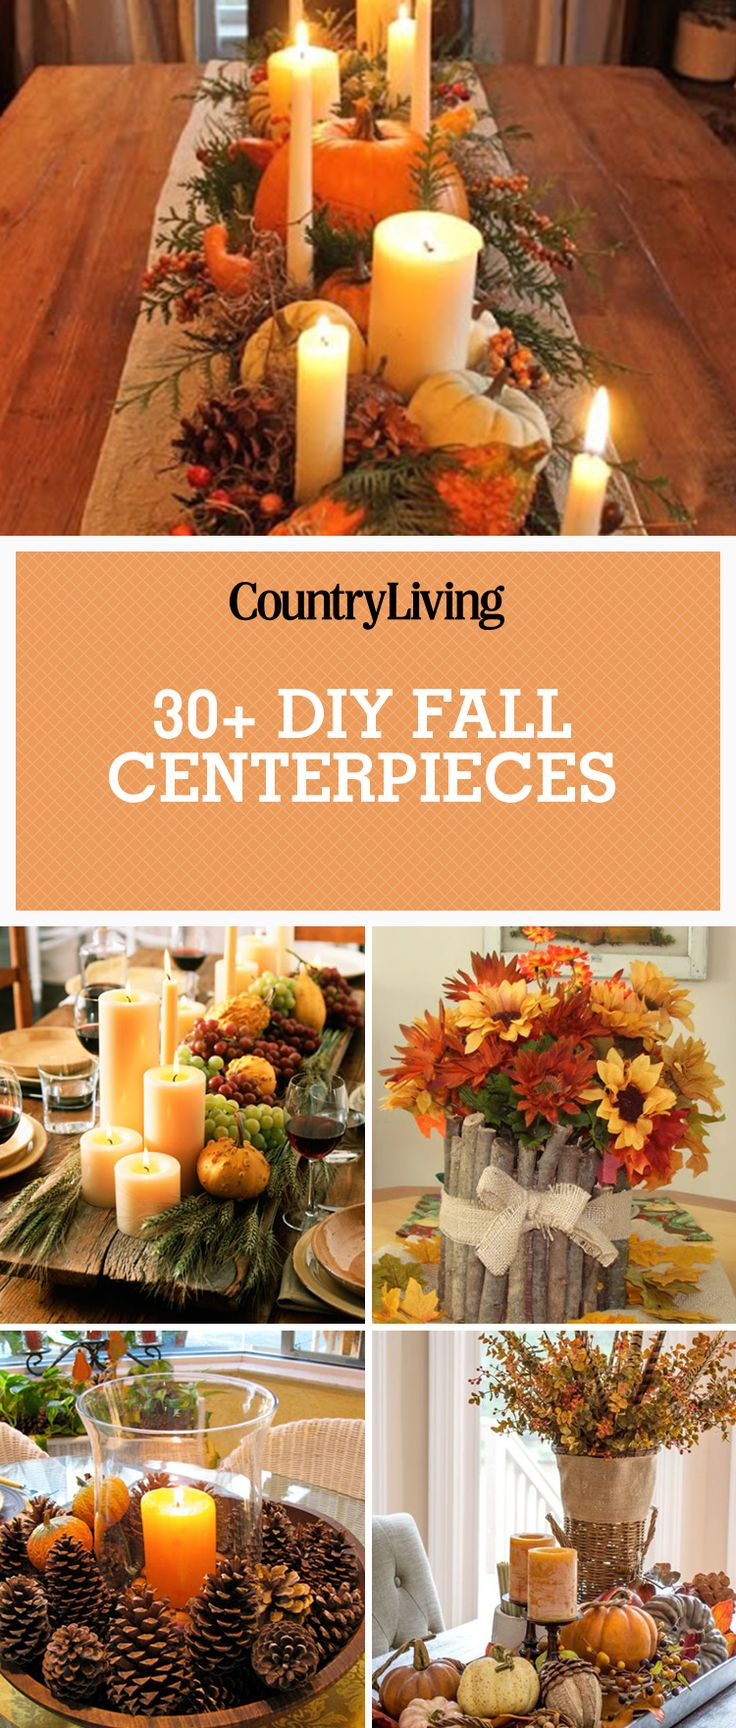 Save these DIY Fall centerpiece ideasfor later by pinning this image and follow Country Living onPinterestfor more.